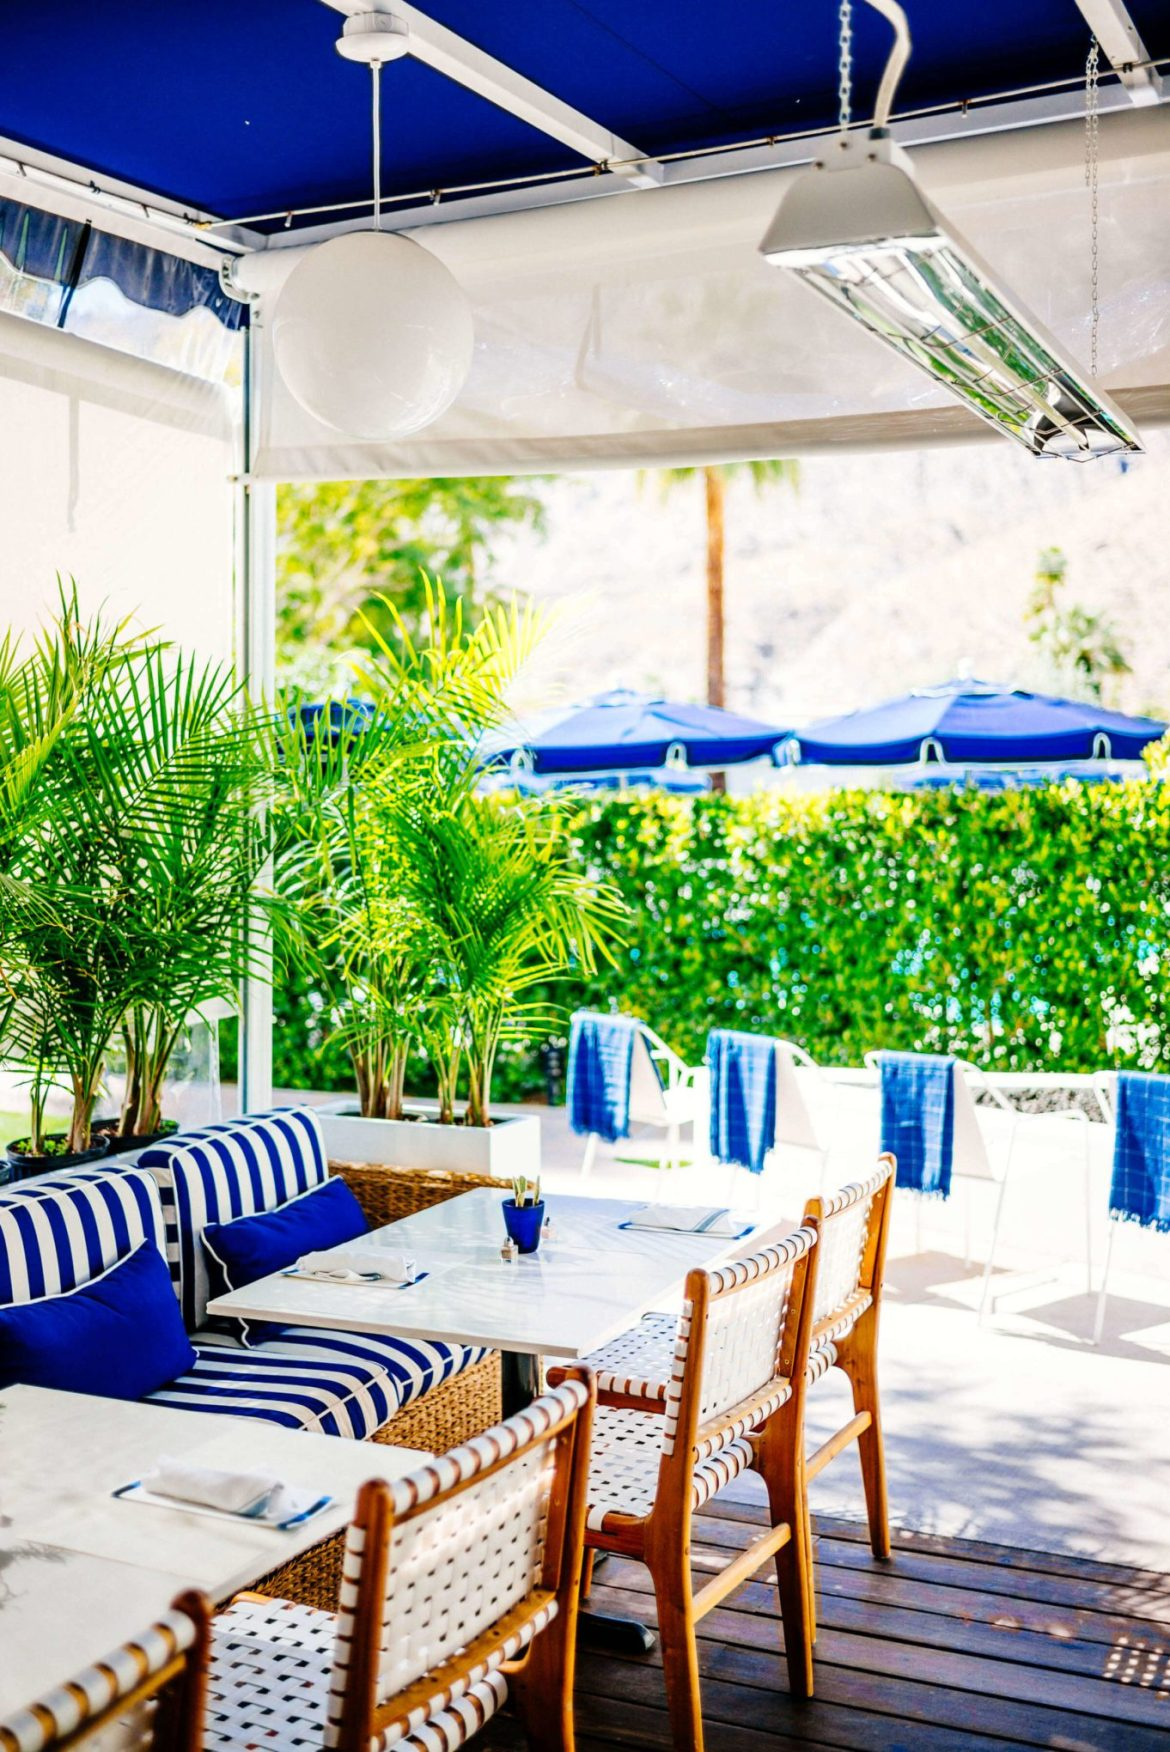 Visit Holiday House in Palm Springs is an adorable hotel in the heart of downtown for lunch or brunch, The Taste Edit